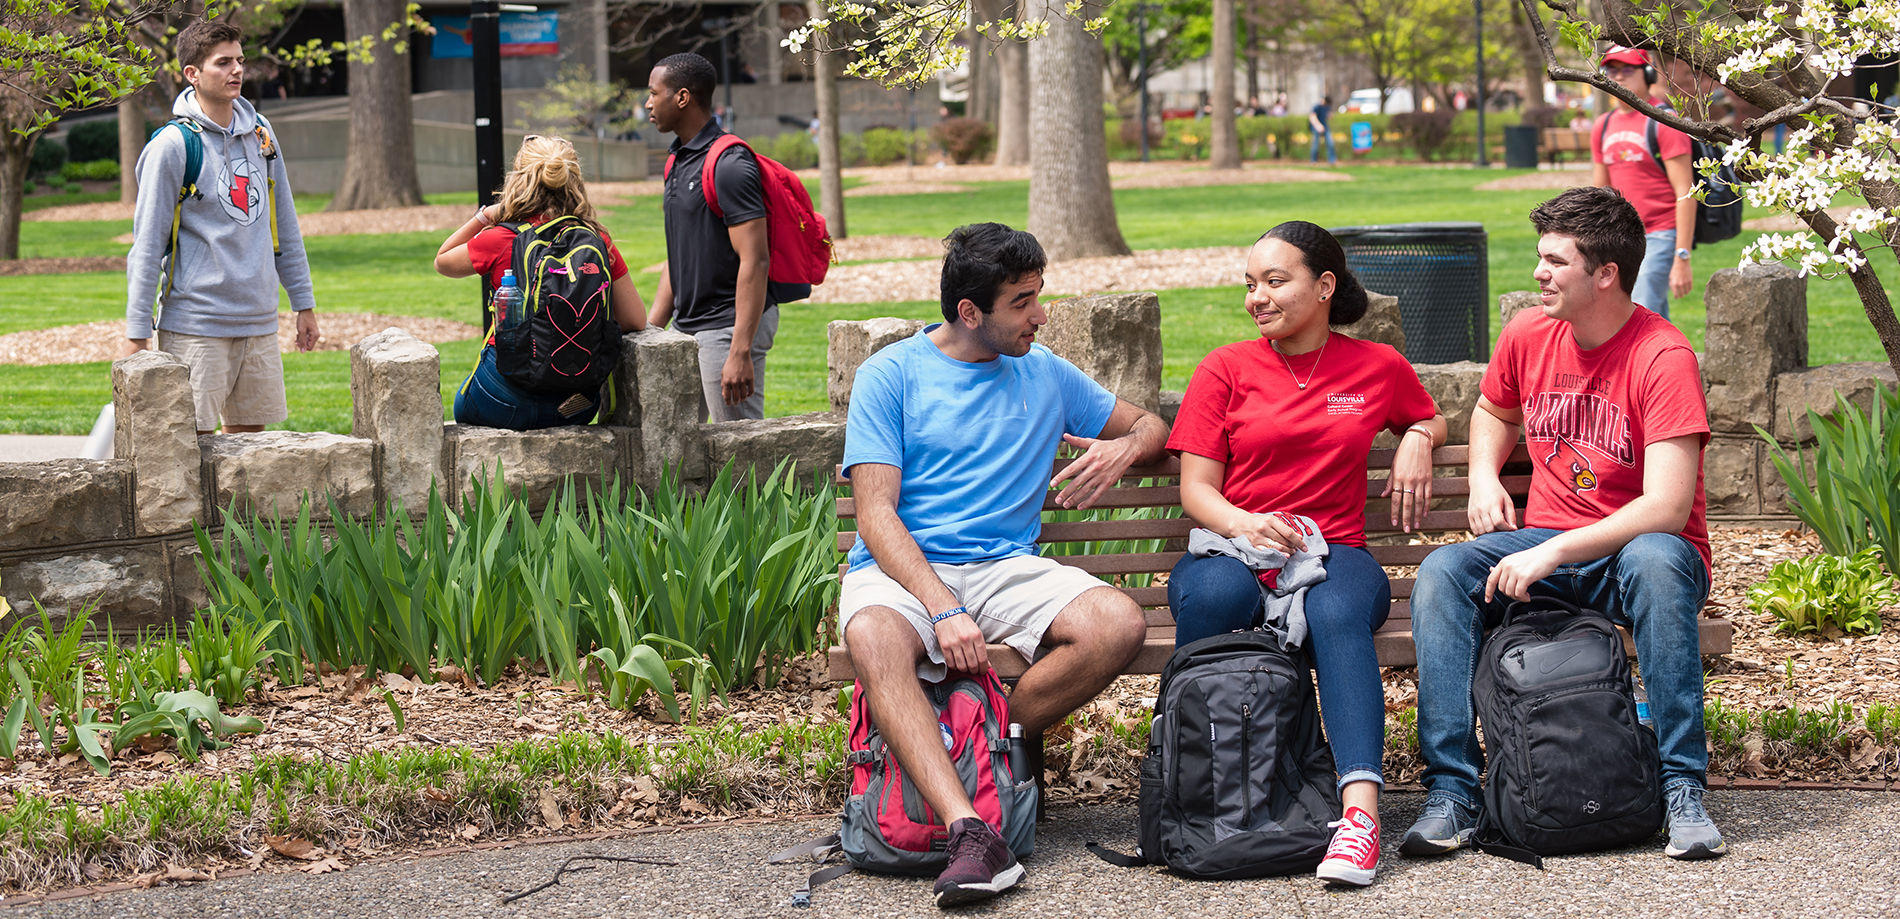 Photograph of students on UofL's campus, seated on a bench and talking.